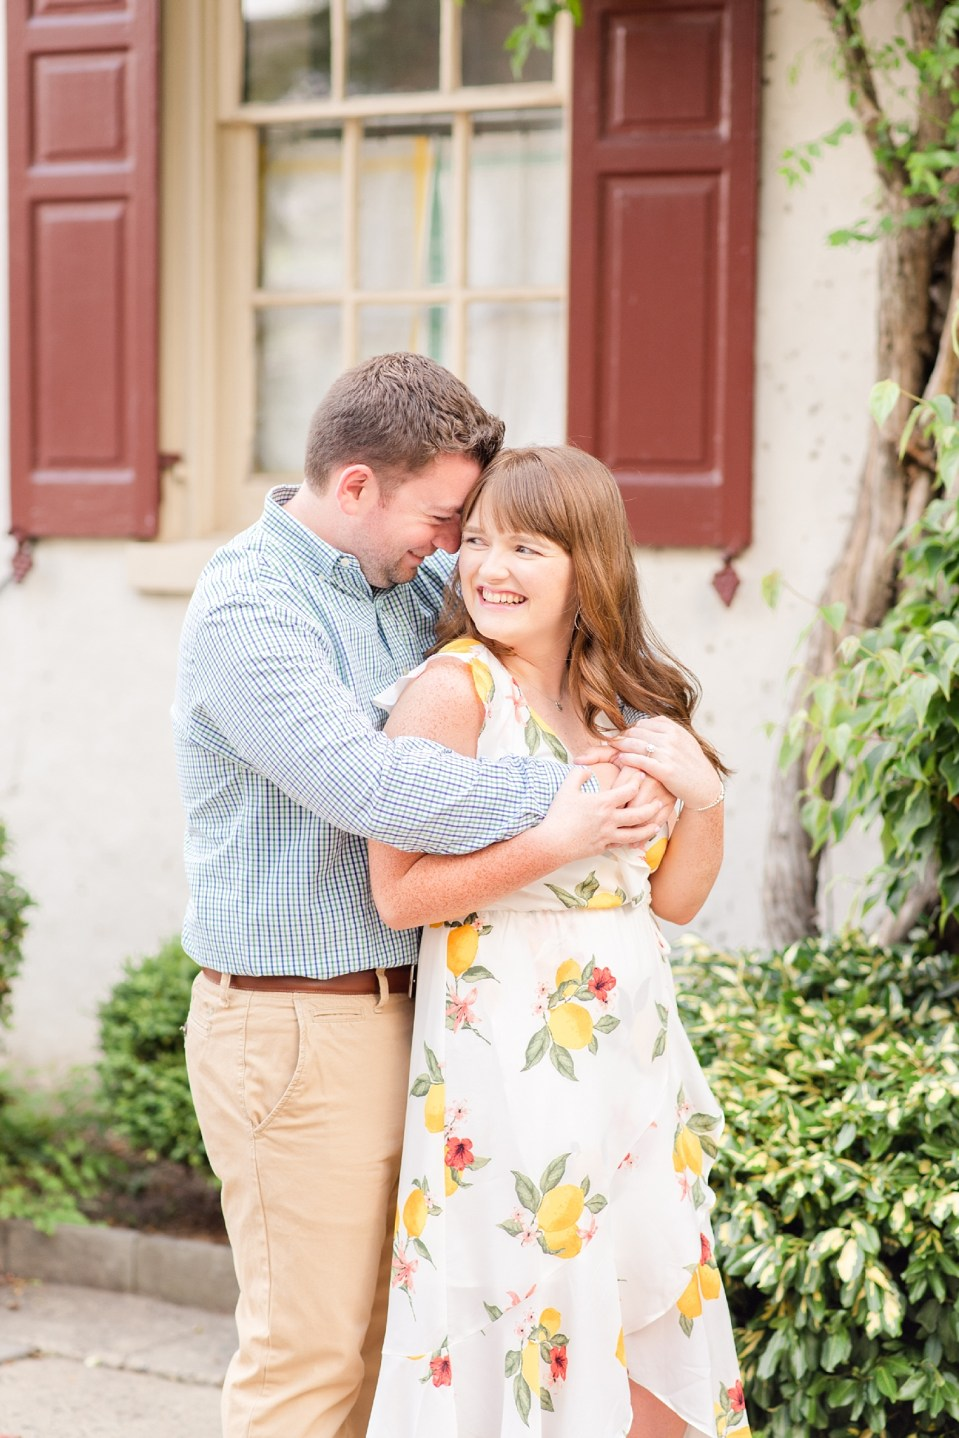 Renee Nicolo Photography photographs summer engagement portraits in PA